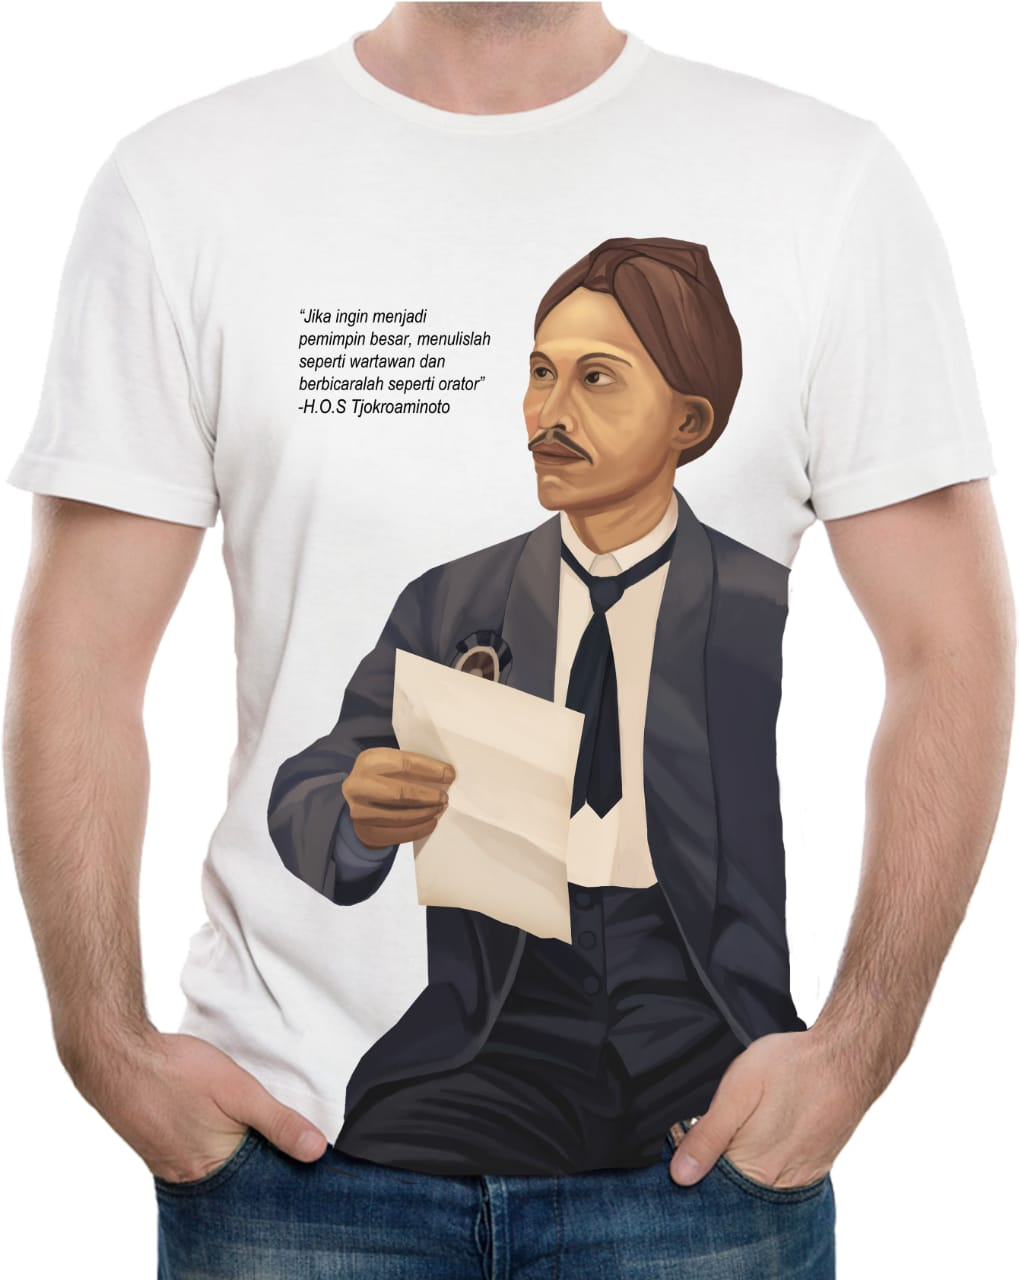 Tshirt Founding Father H.O.S. Tjokroaminoto (White) - LIMITED EDITION